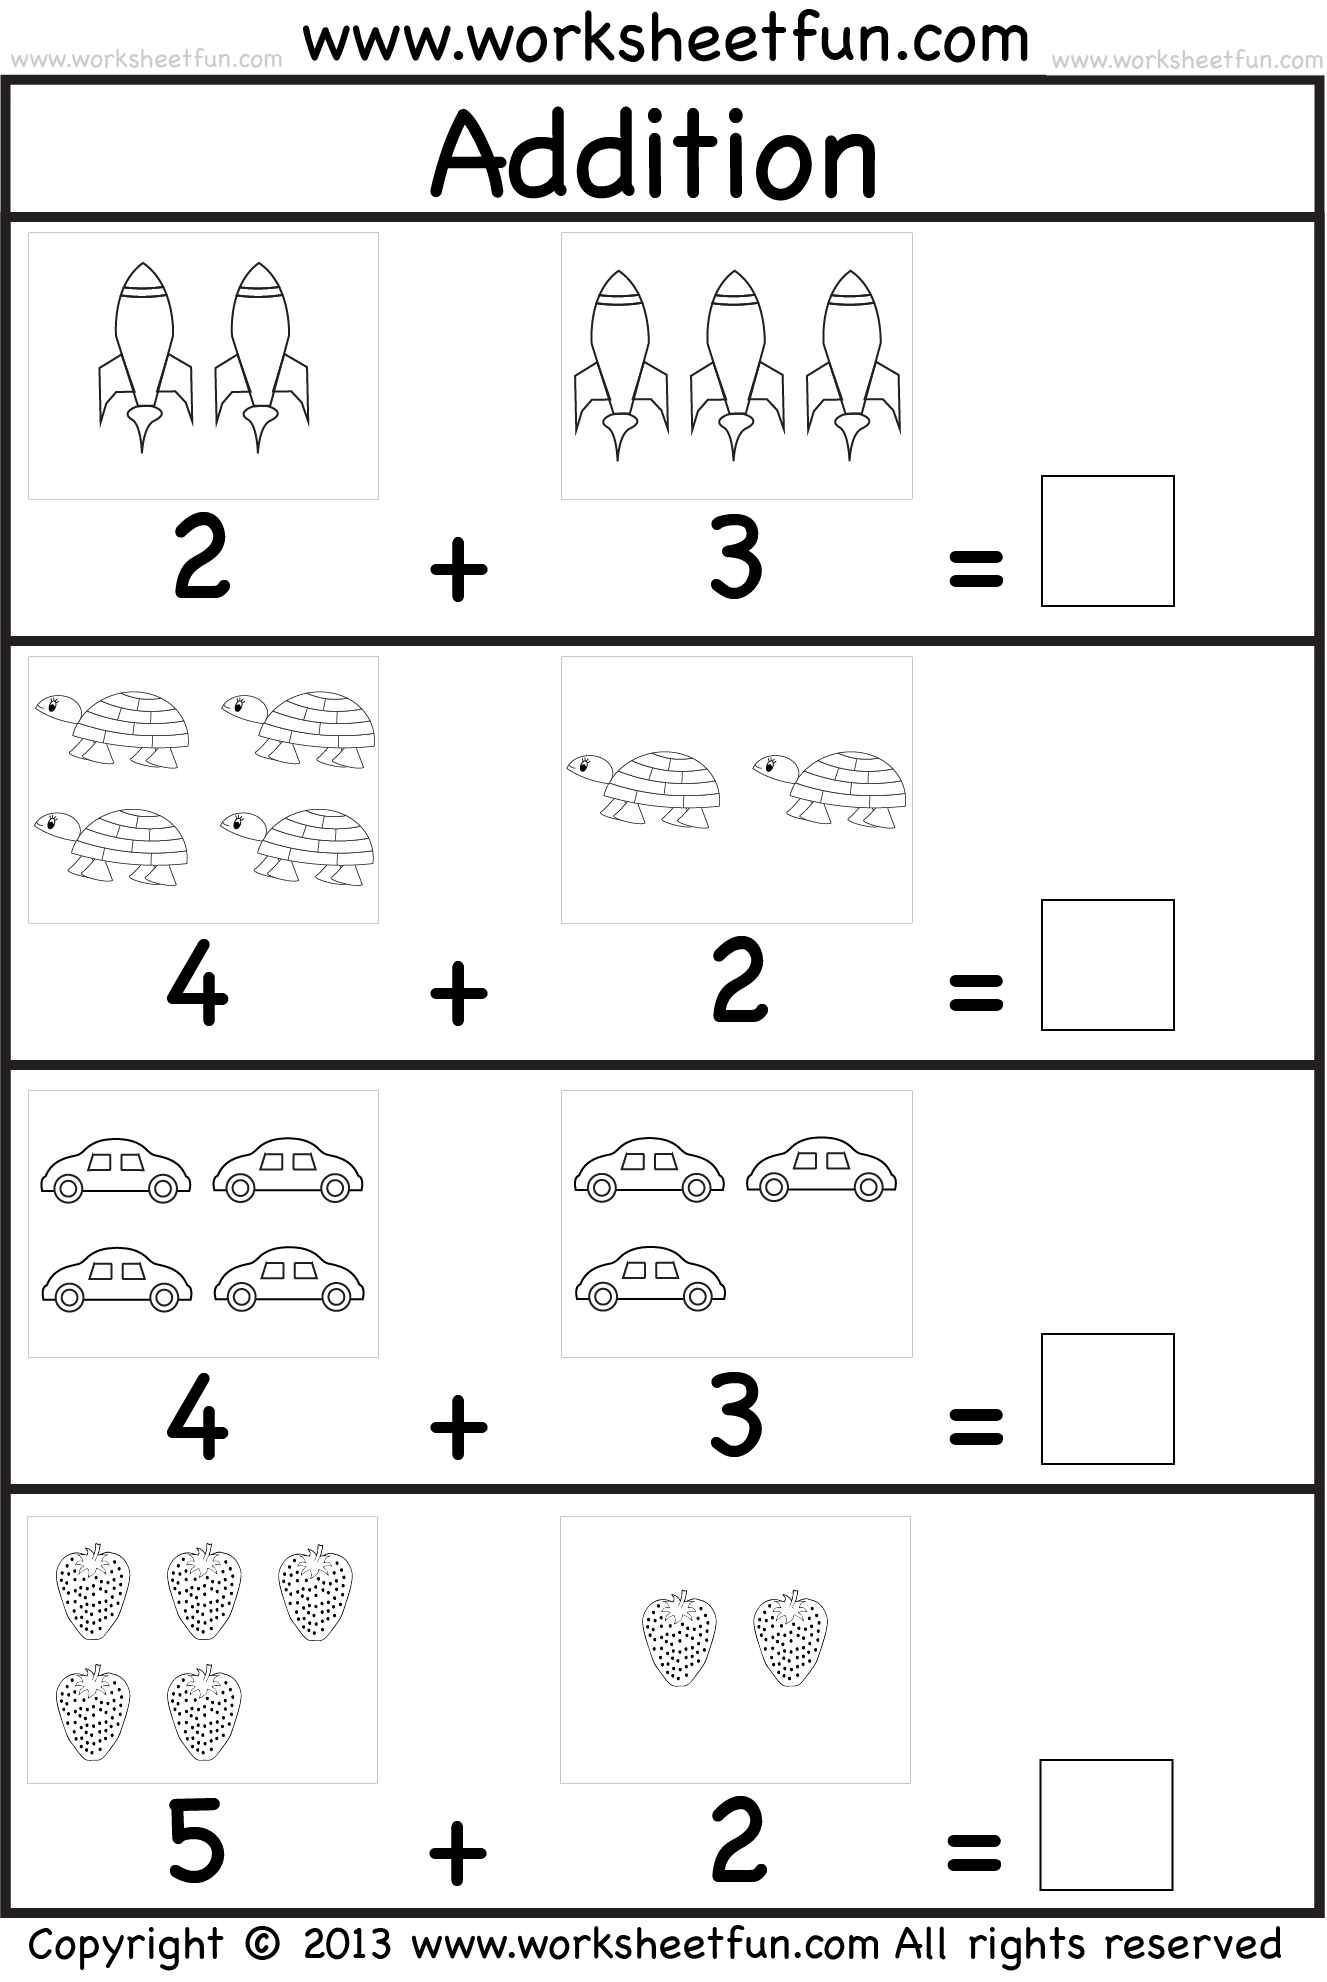 Uncategorized Free Printable Kindergarten Worksheets Math addition worksheet this site has great free worksheets for everything from abcs to math